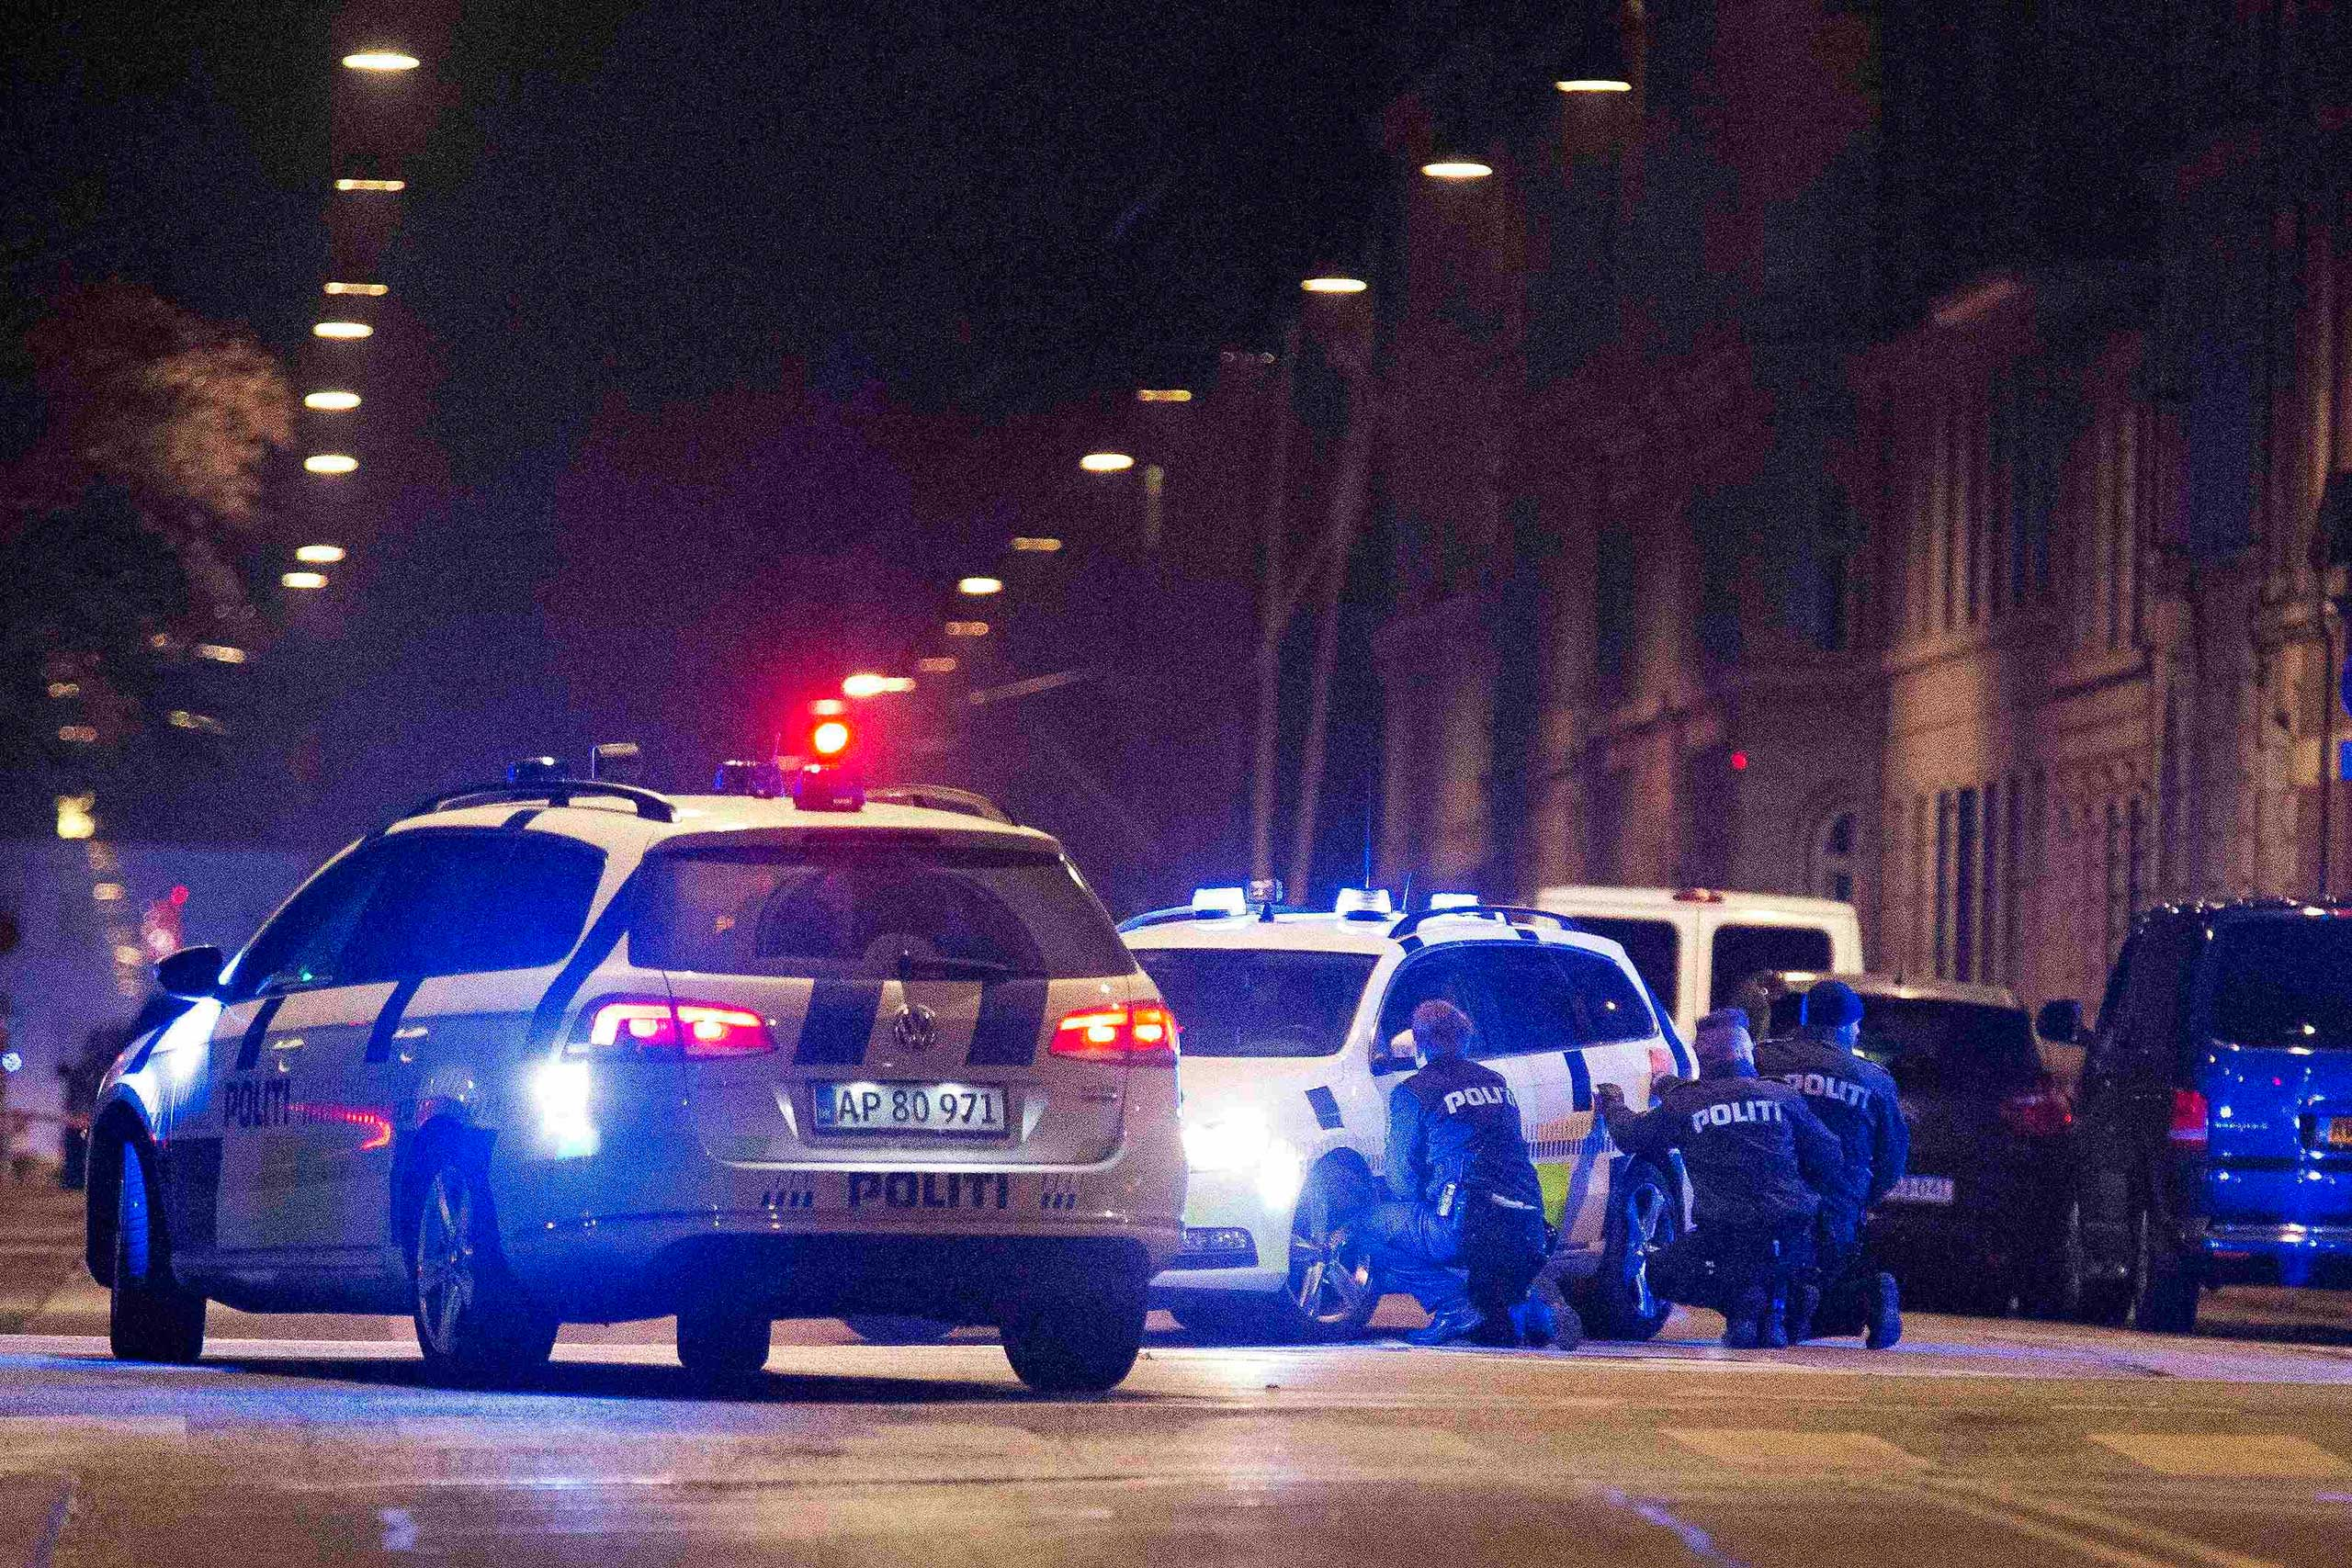 Police personnel and vehicles are seen along a street in central Copenhagen, early Feb. 15, 2015 following shootings at a synagogue in Krystalgade.